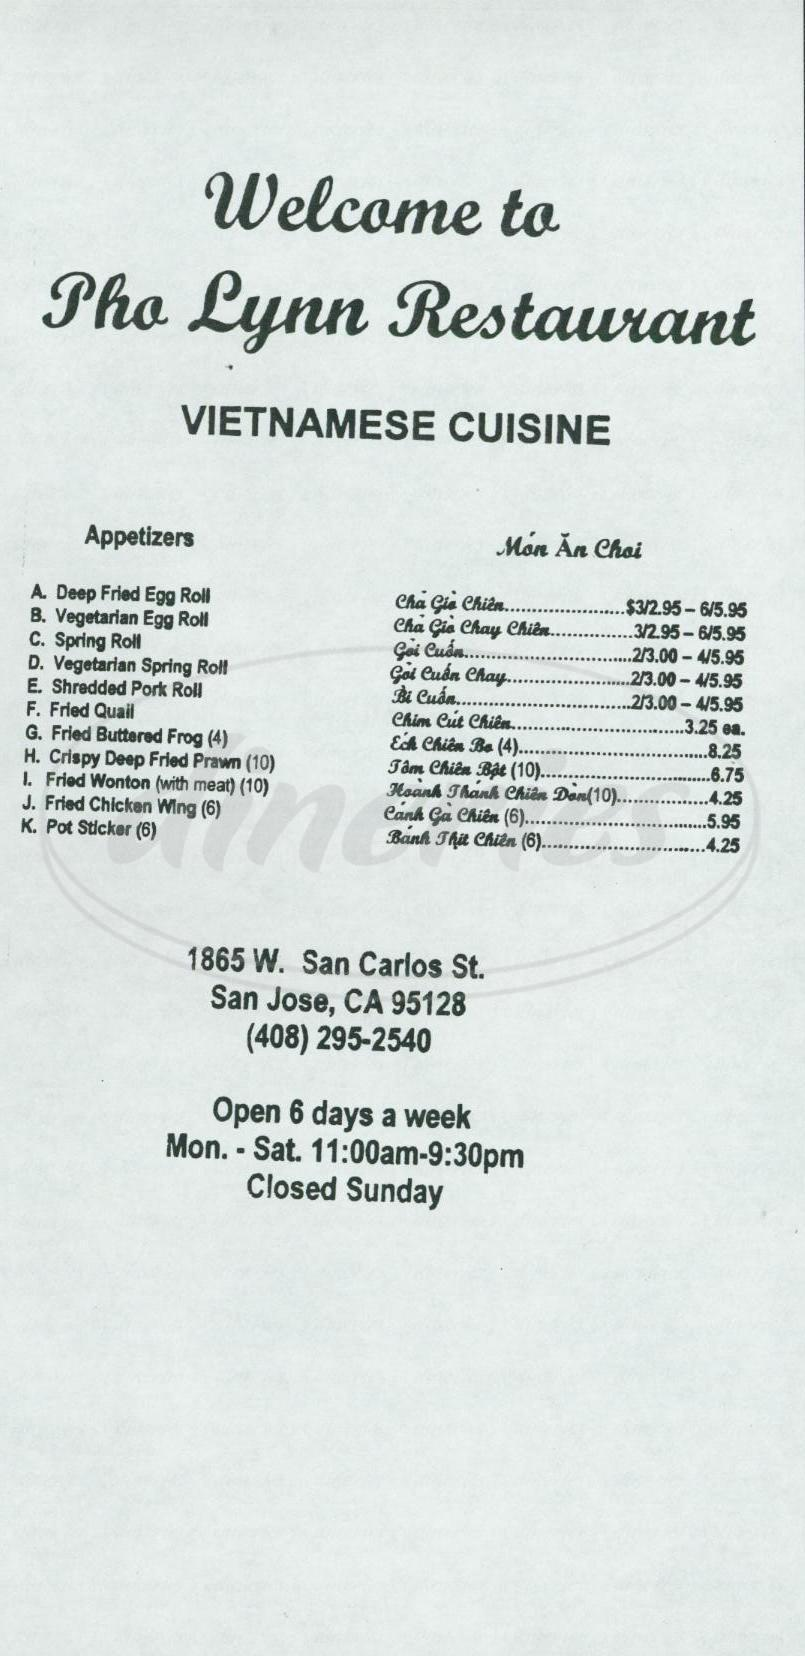 menu for Pho Lynn Restaurant